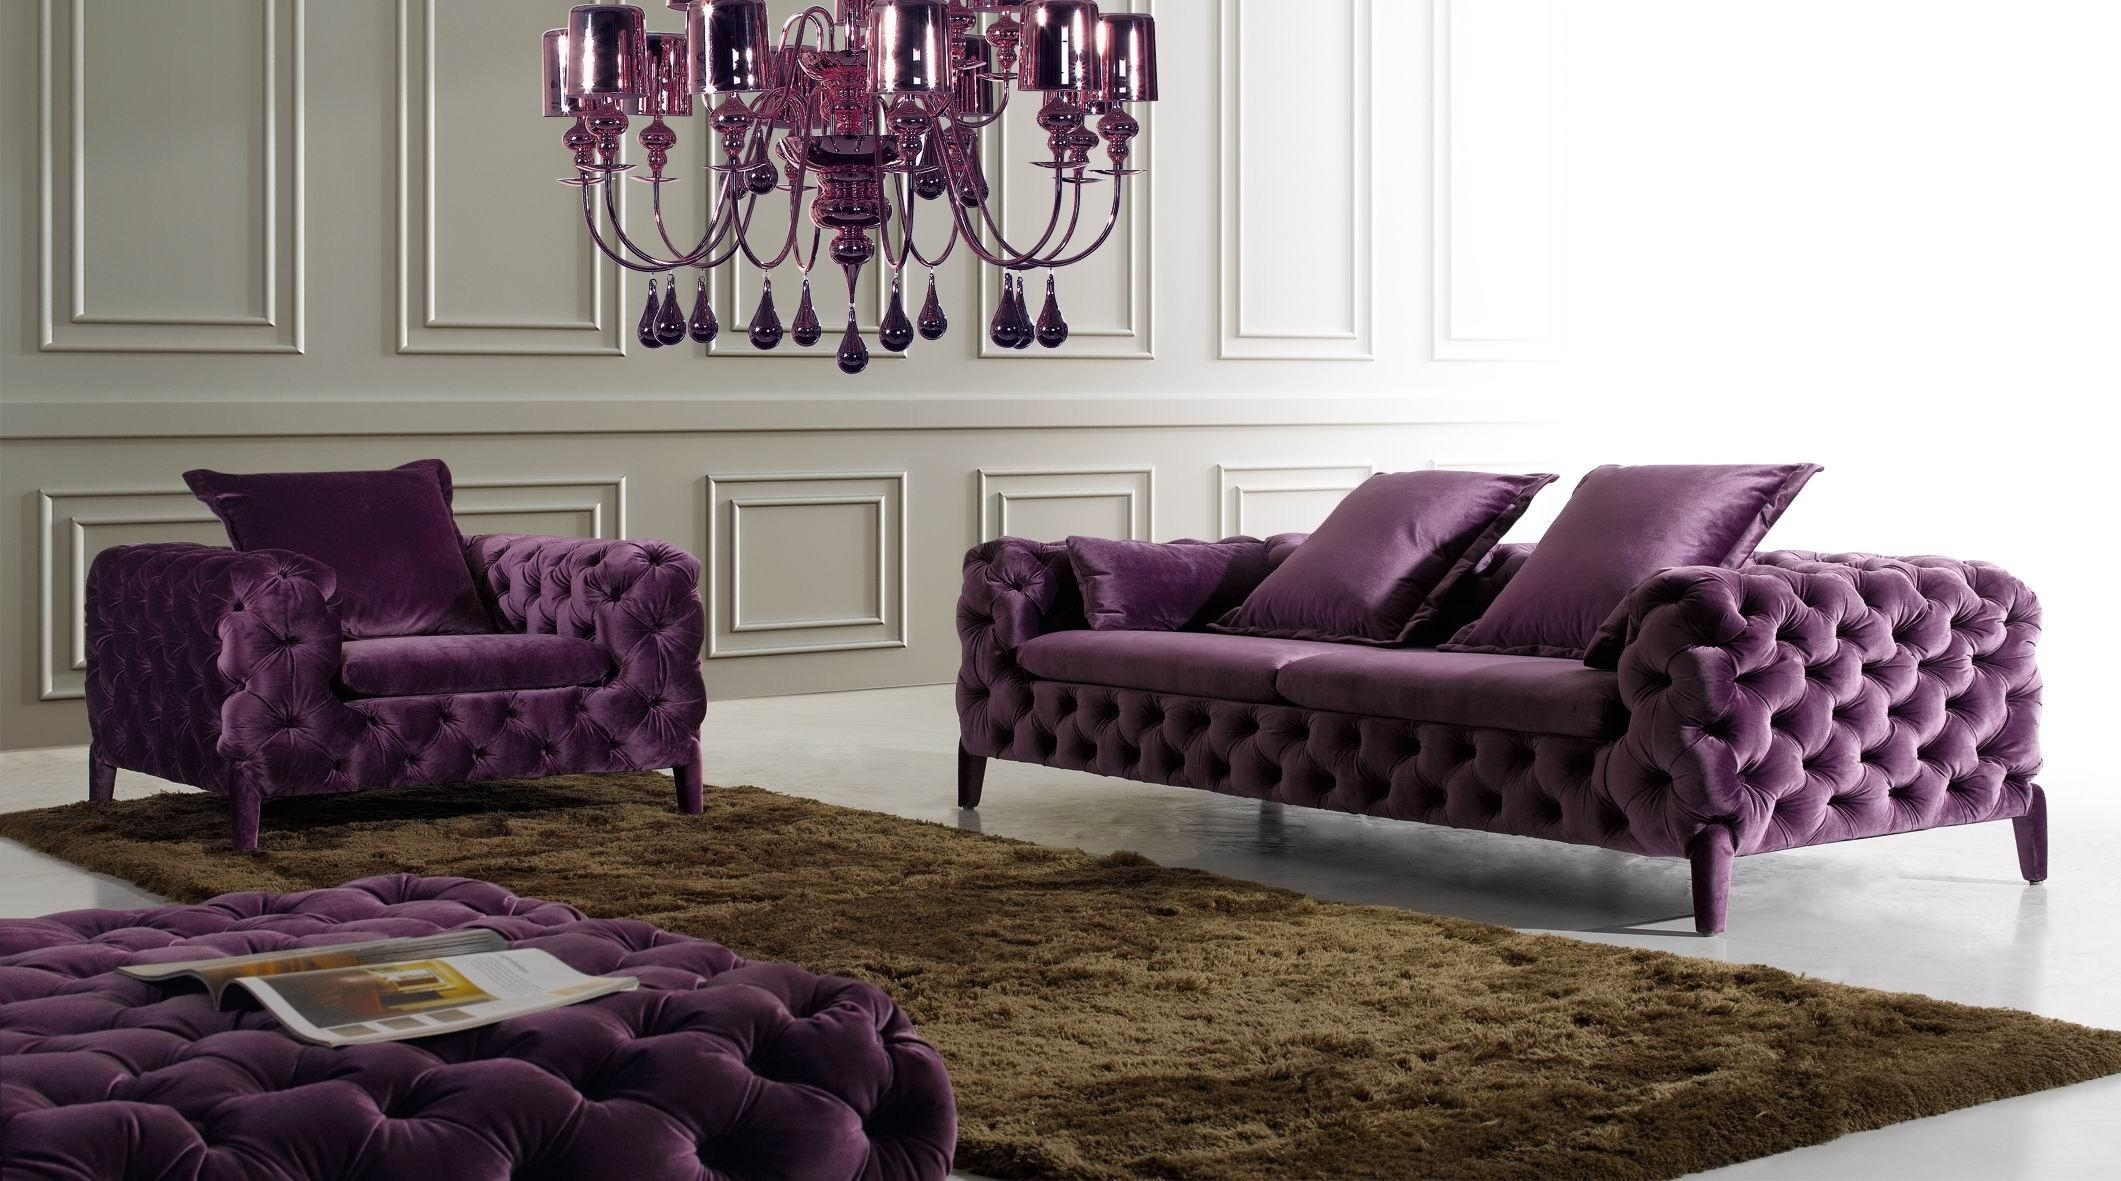 Affordable Tufted Sofa With Design Ideas 24751 | Kengire With Regard To Affordable Tufted Sofa (Image 6 of 20)